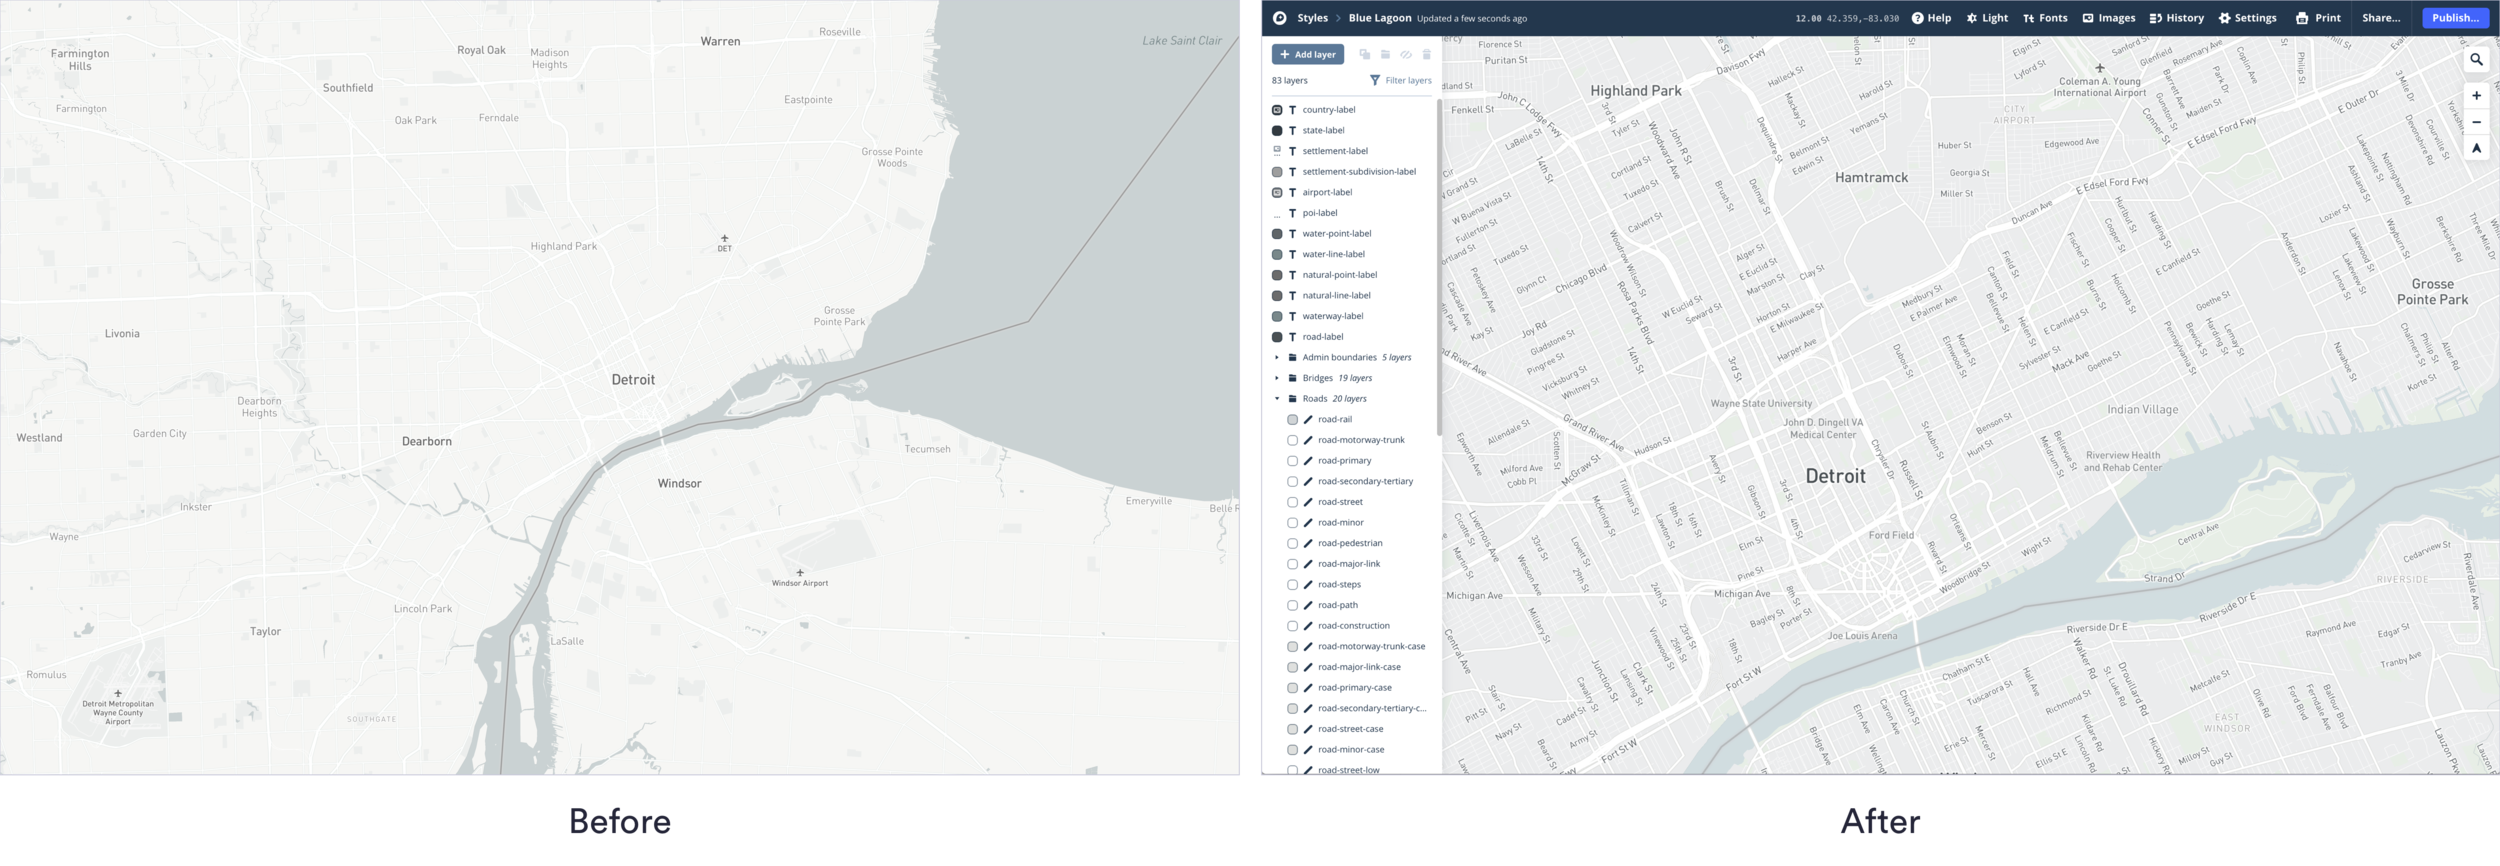 MapBox only gives an option for a Light mode and a Dark mode out of the box. For RoadCode, with all the layers we would be adding, I wanted a solution better aligned with our needs so I customized everything on the map.